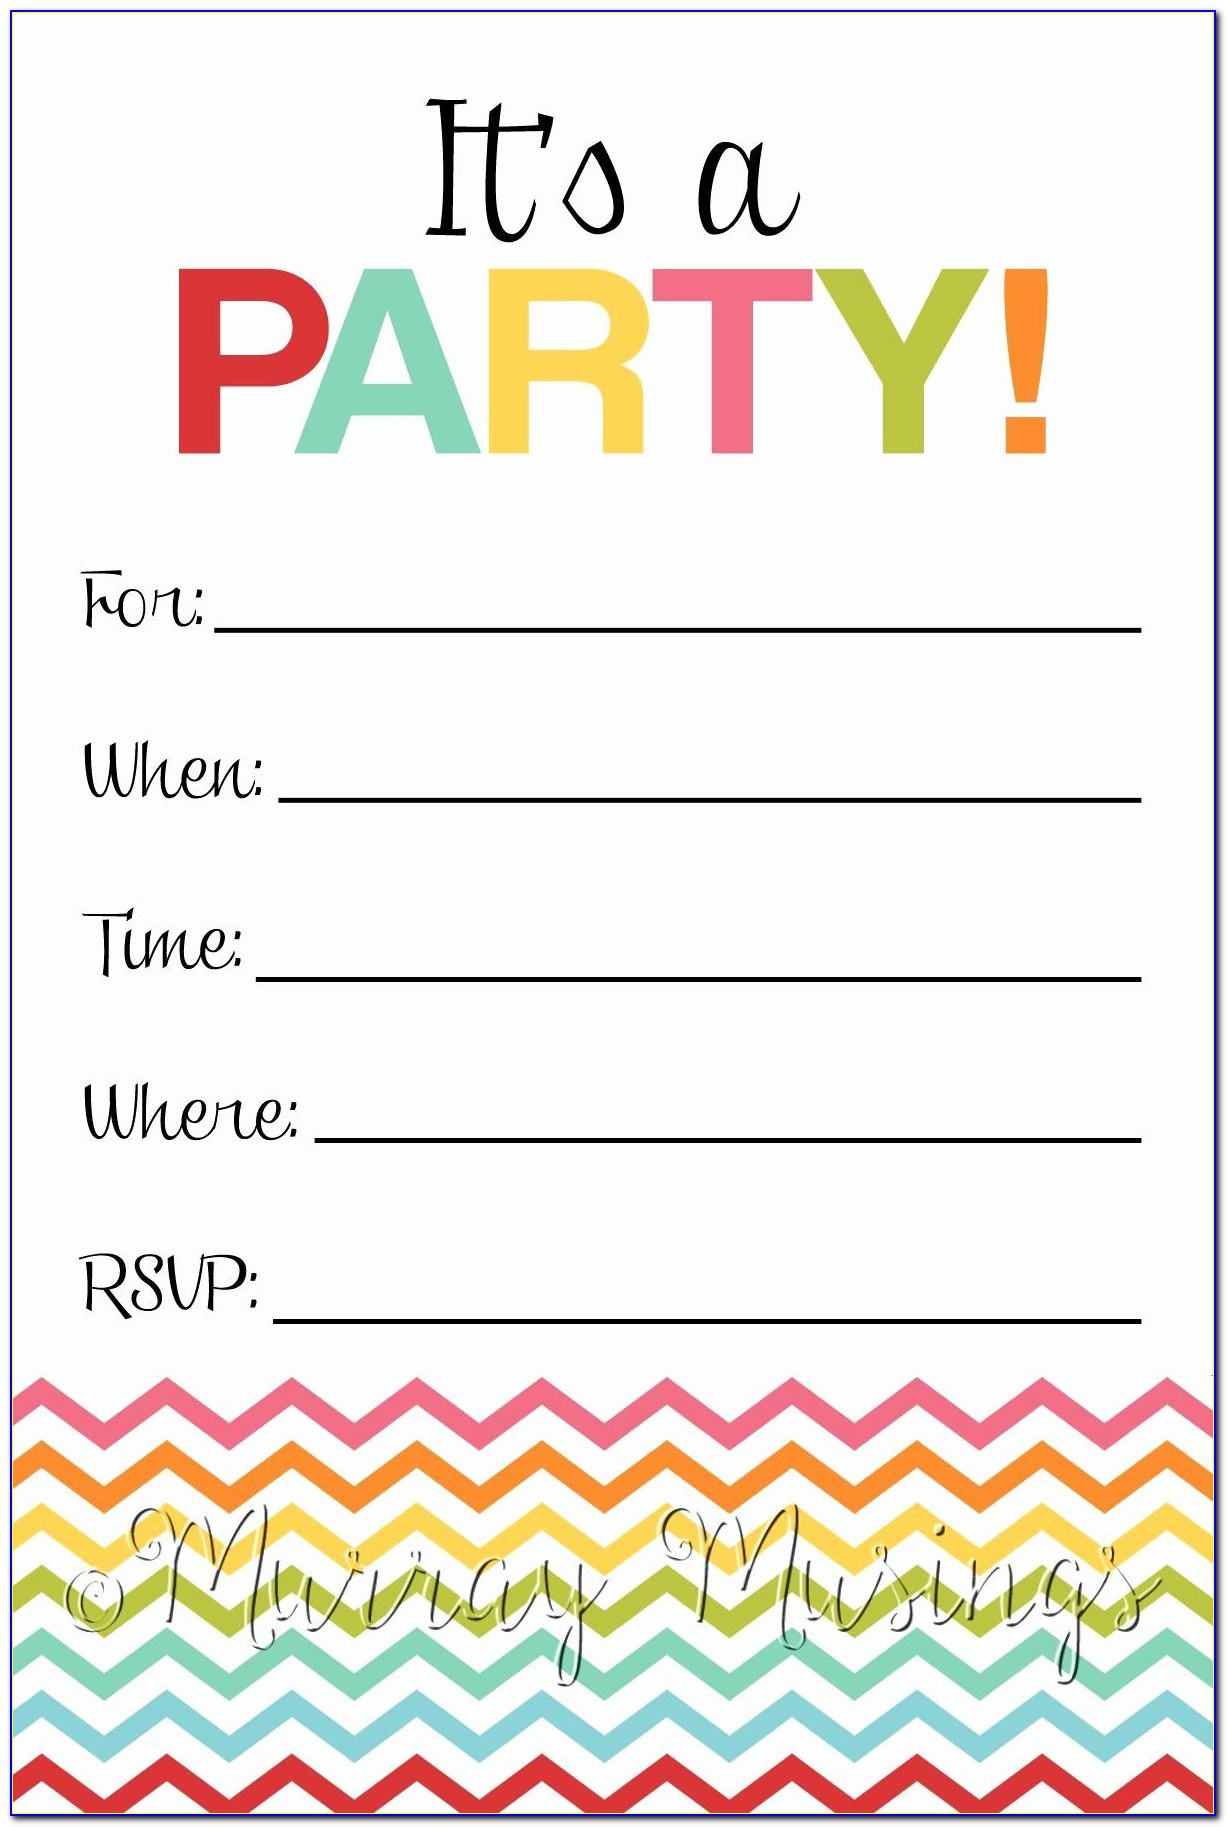 Fill In Party Invitations